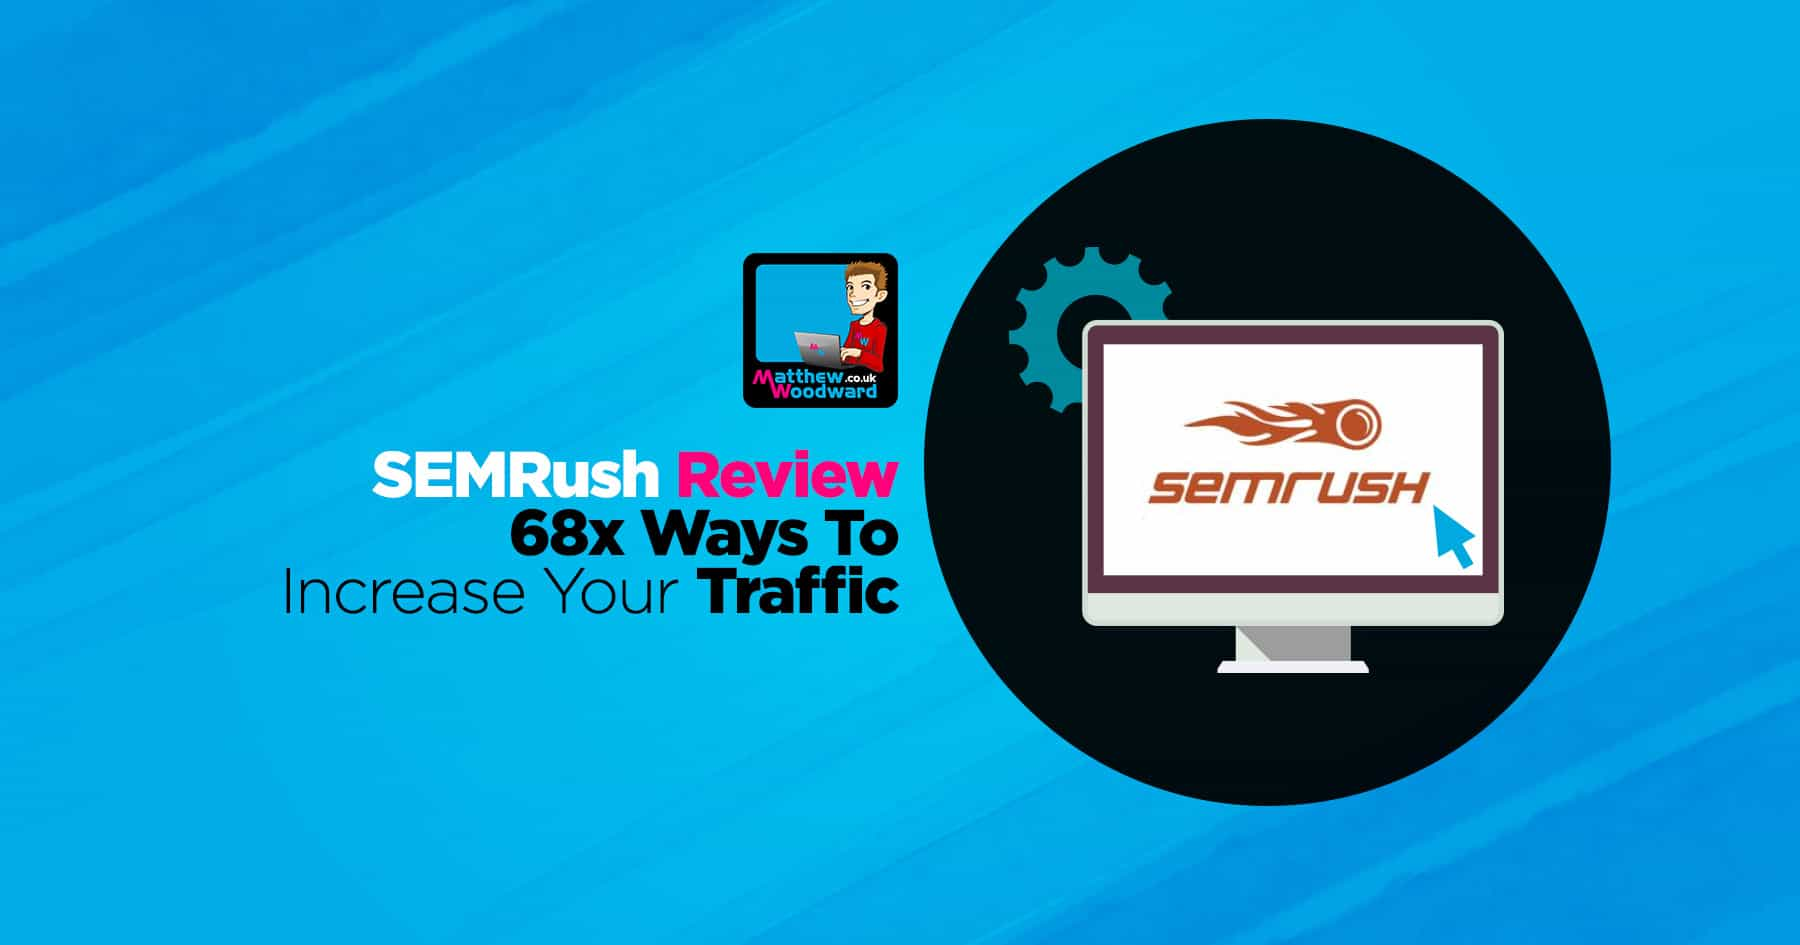 Buy Seo Software Semrush  Black Friday Deals 2020